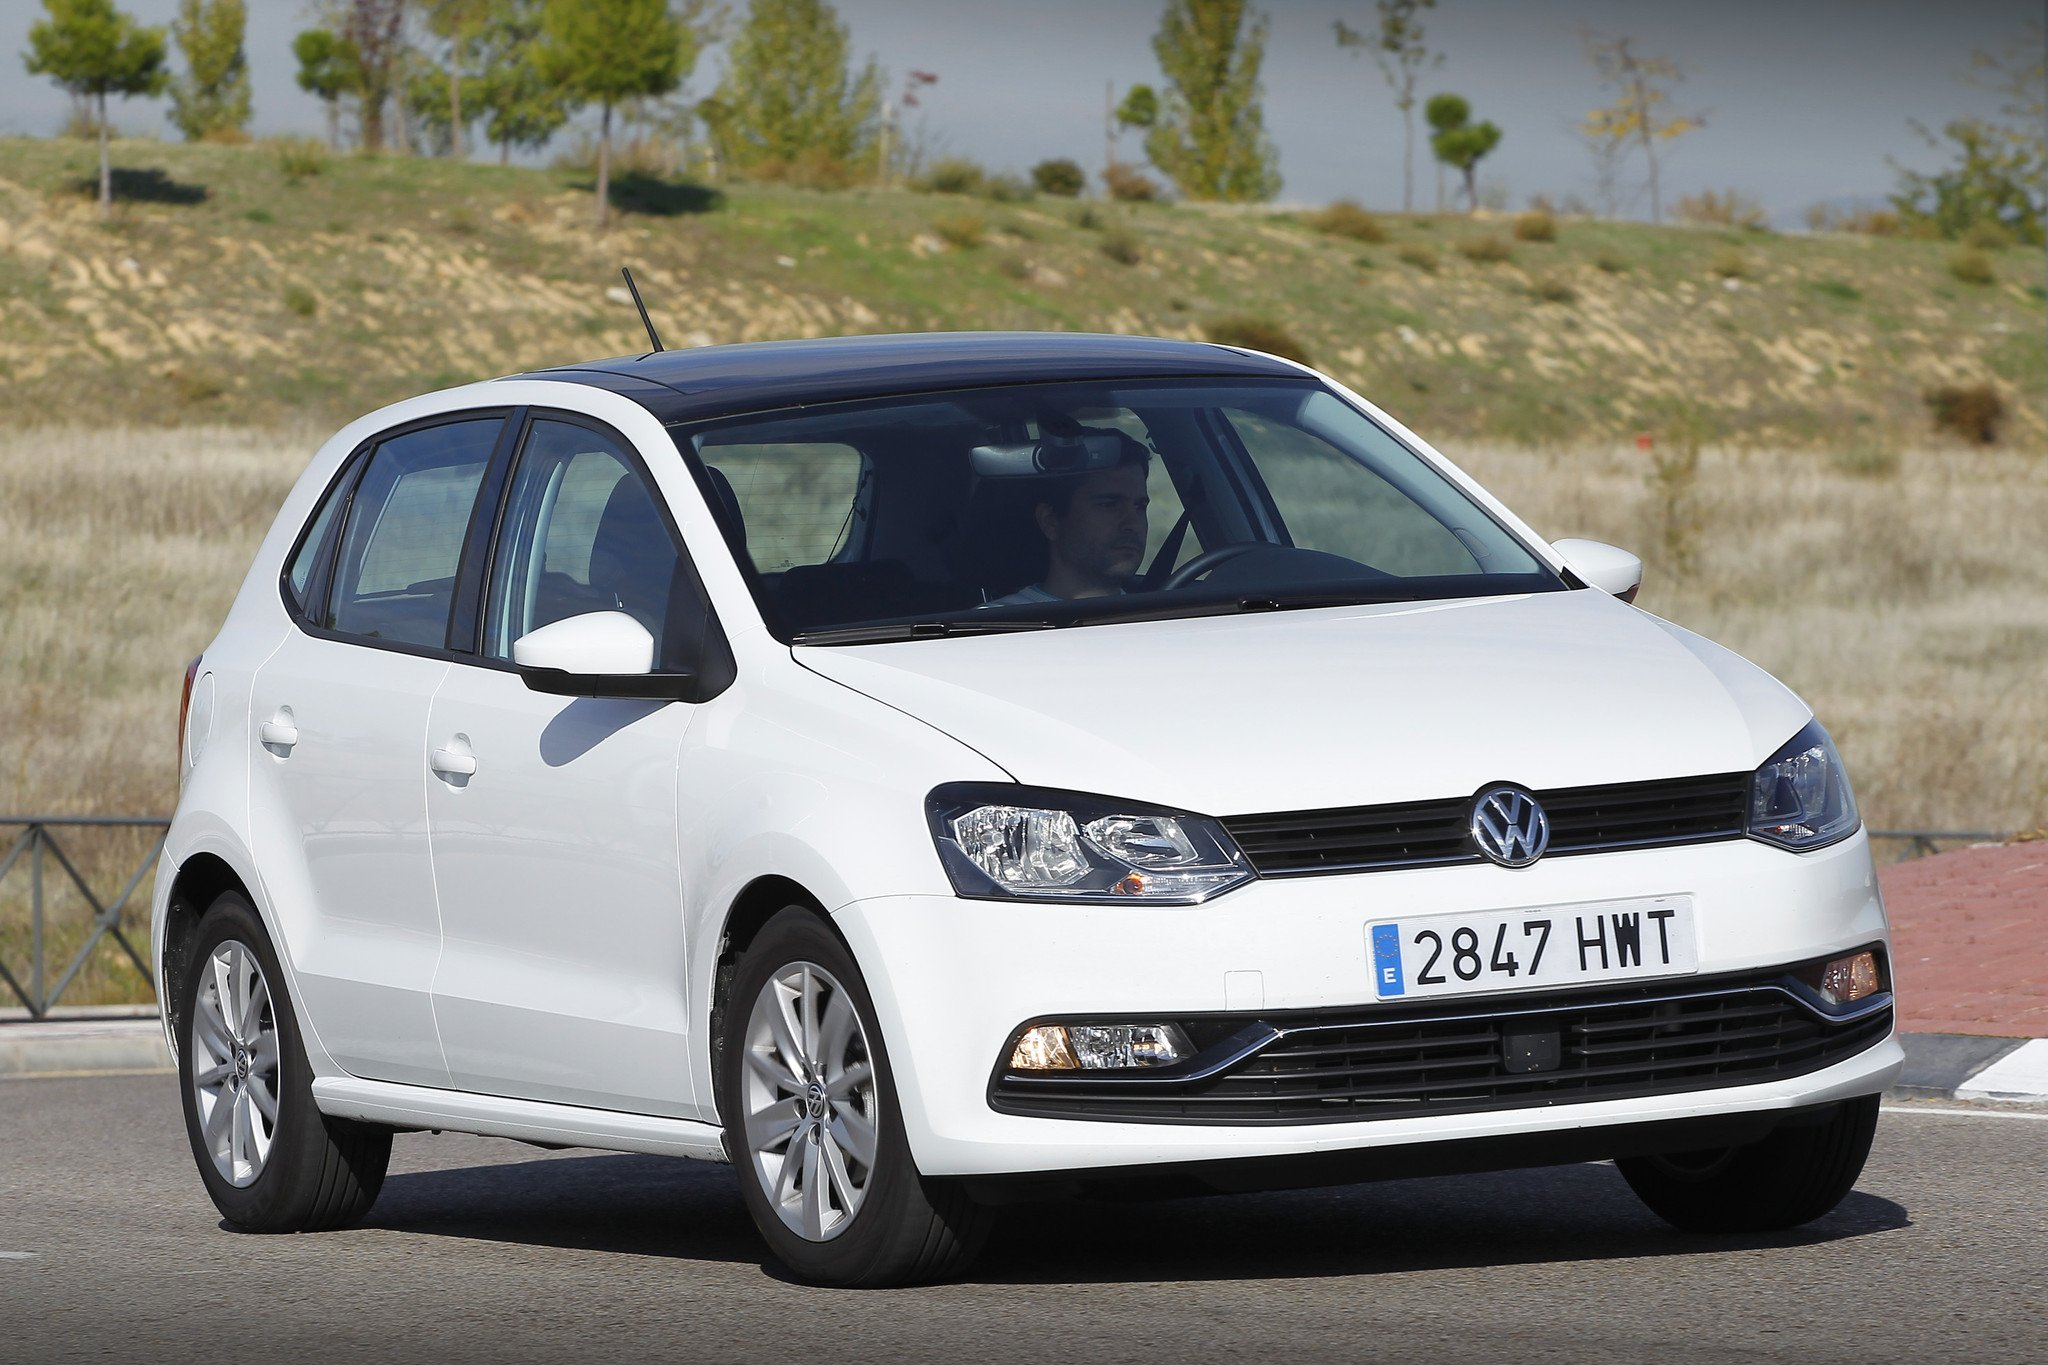 prueba volkswagen polo bluemotion 1 4 tdi 90 cv son. Black Bedroom Furniture Sets. Home Design Ideas